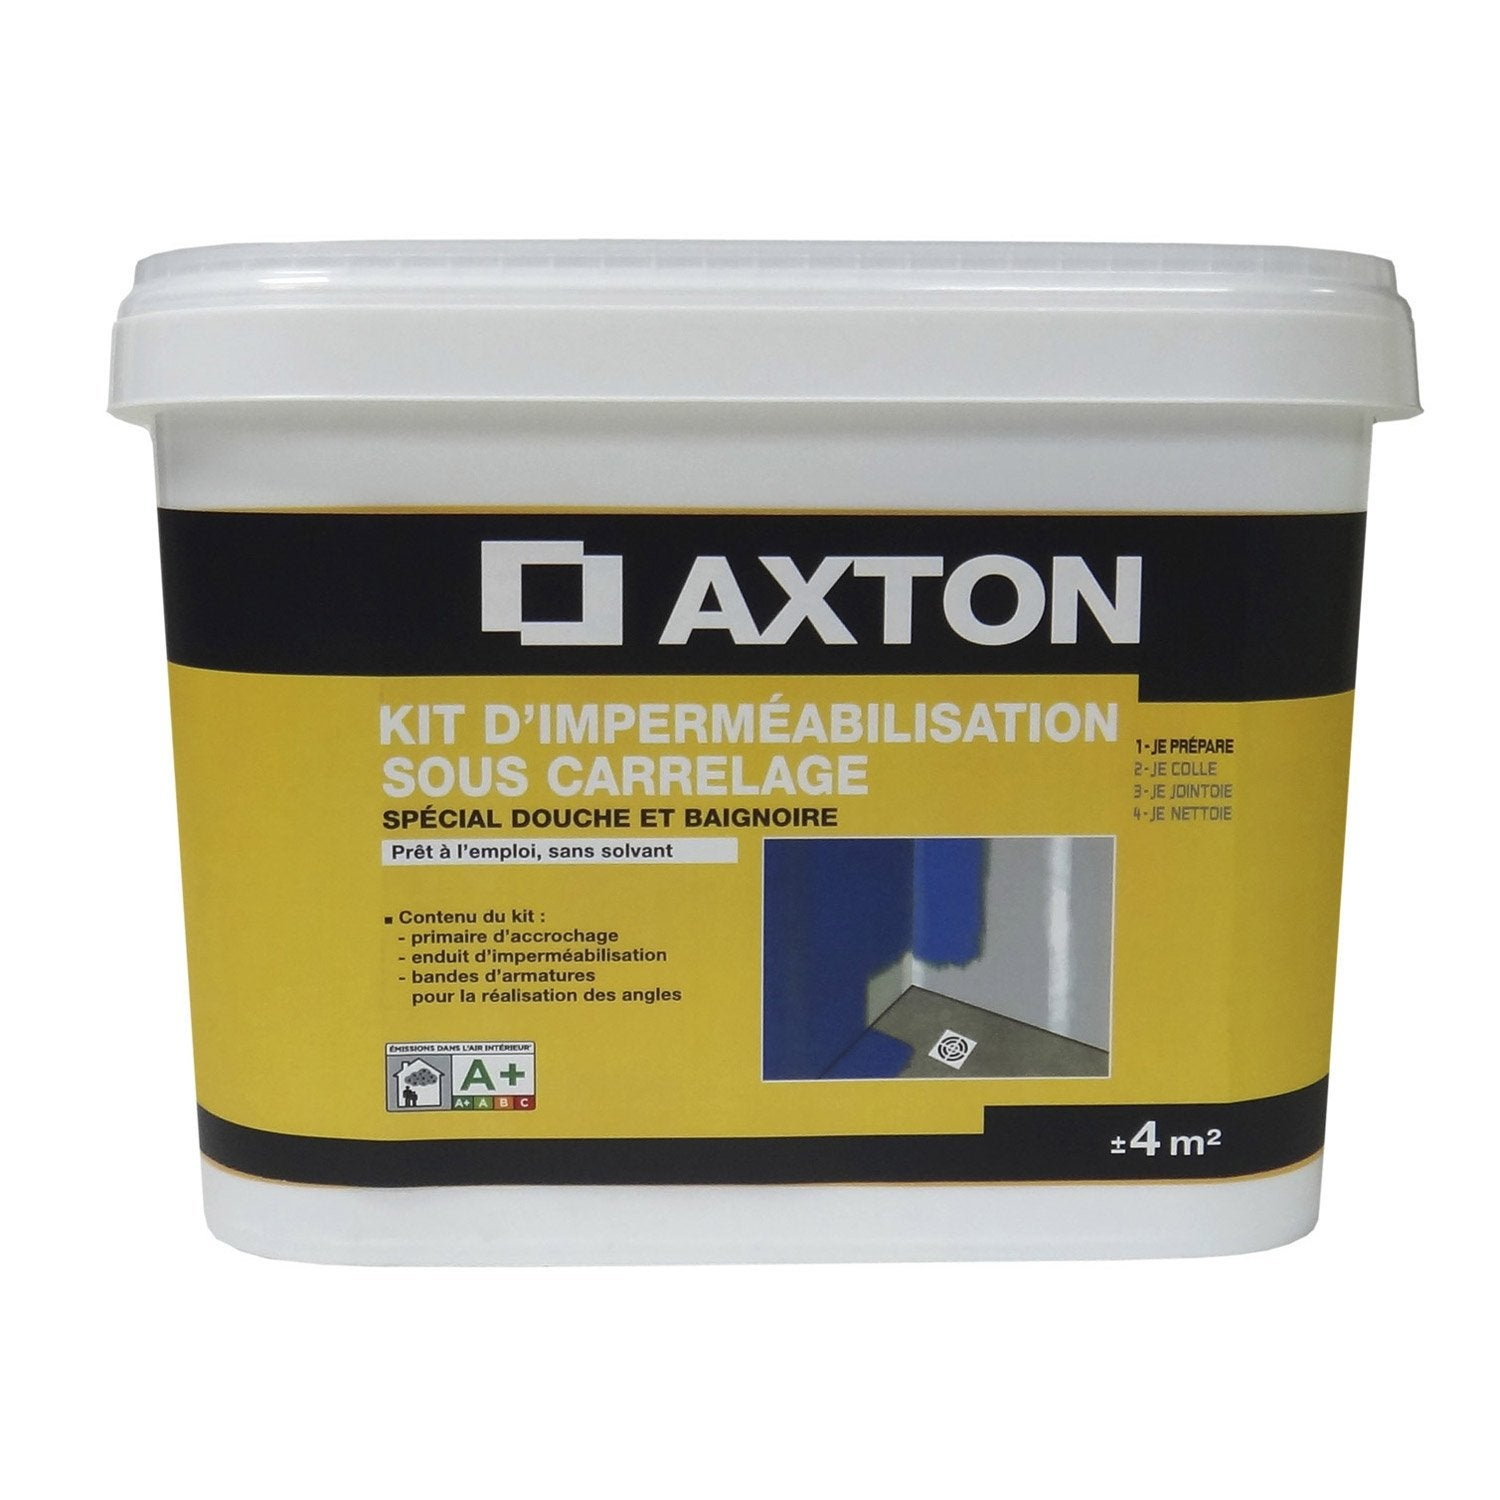 Kit imperm abilisation axton 4 m leroy merlin for Kit etancheite sous carrelage